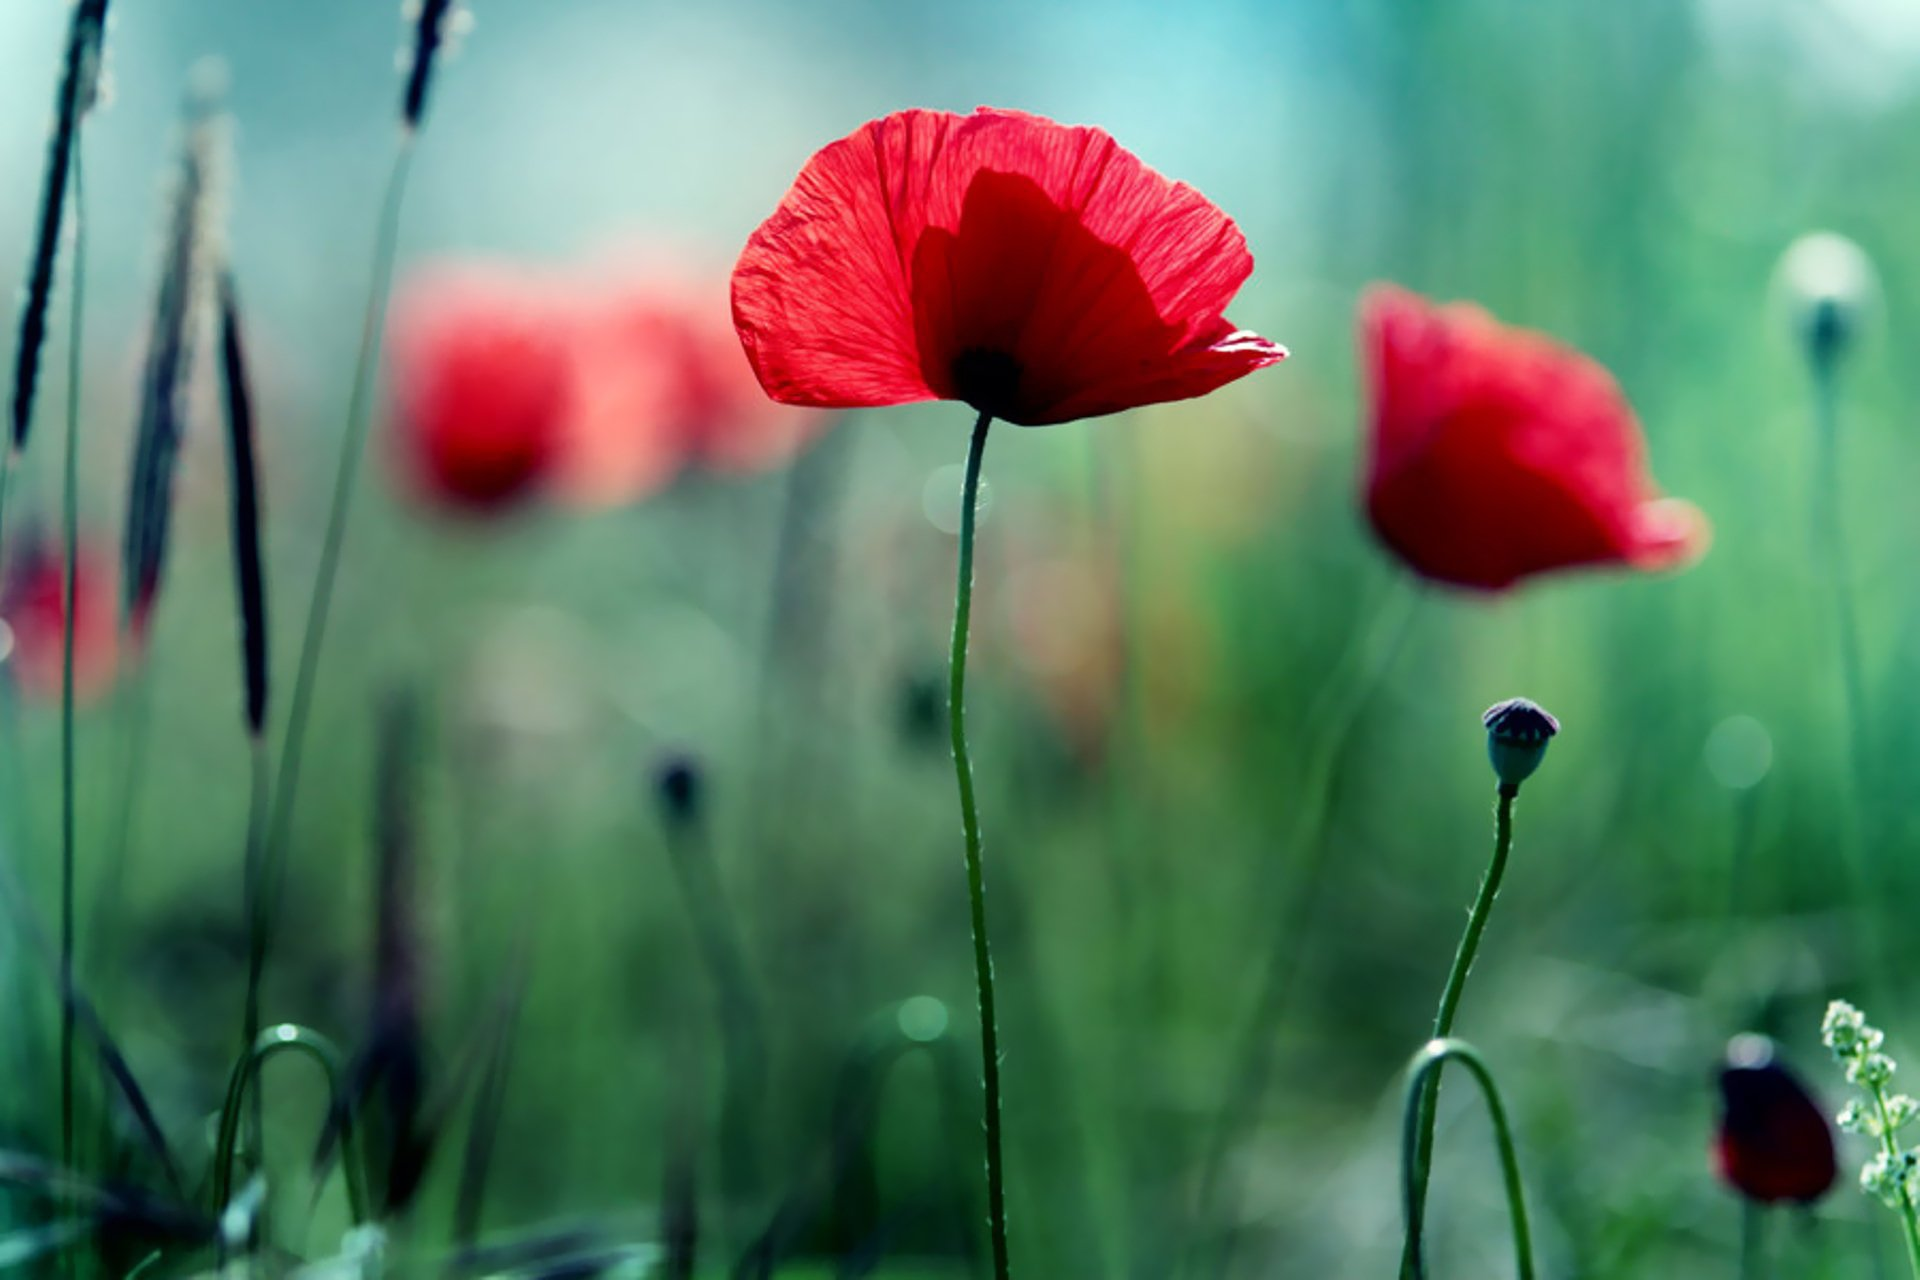 Wallpaper with poppies wallpapersafari - Poppy wallpaper ...